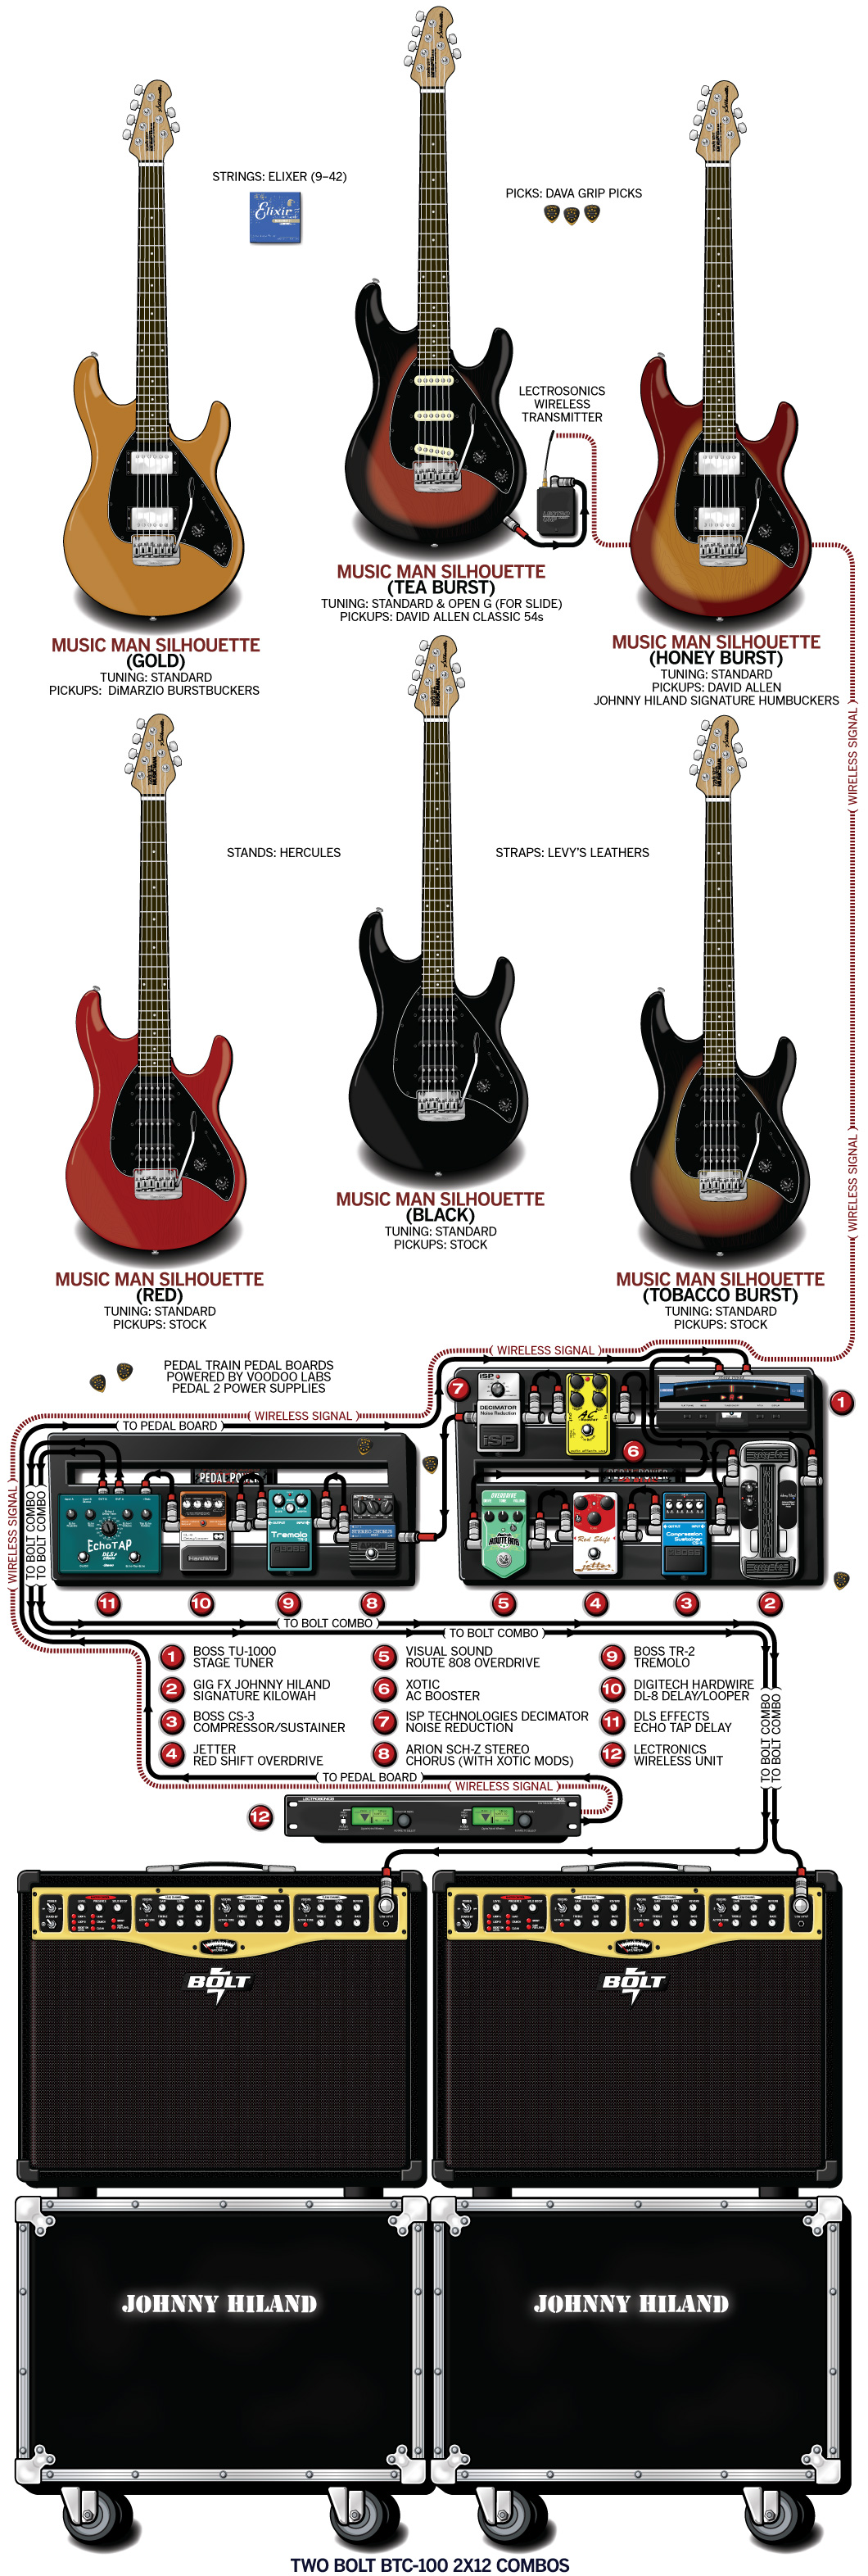 Johnny Hiland Guitar Gear & Rig